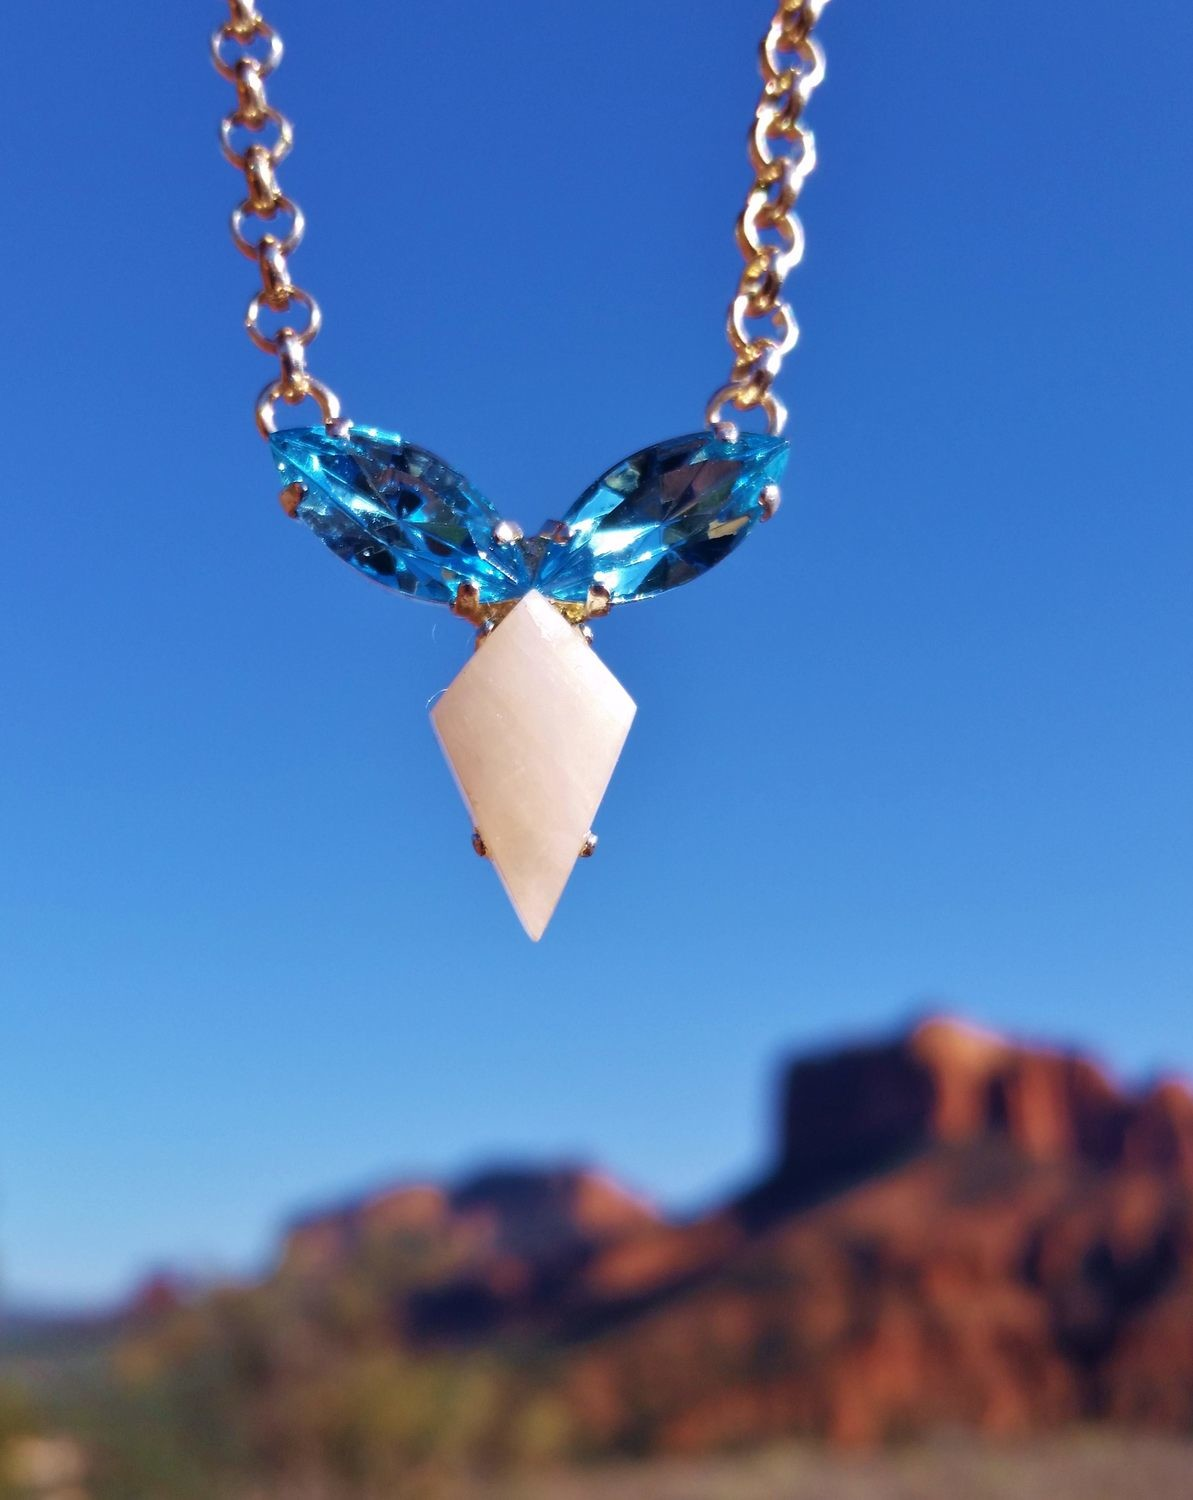 Available: Priestess Portal of the Vortex  Sedona White light Crystal/Blue Ray Sale $288.00/333.00